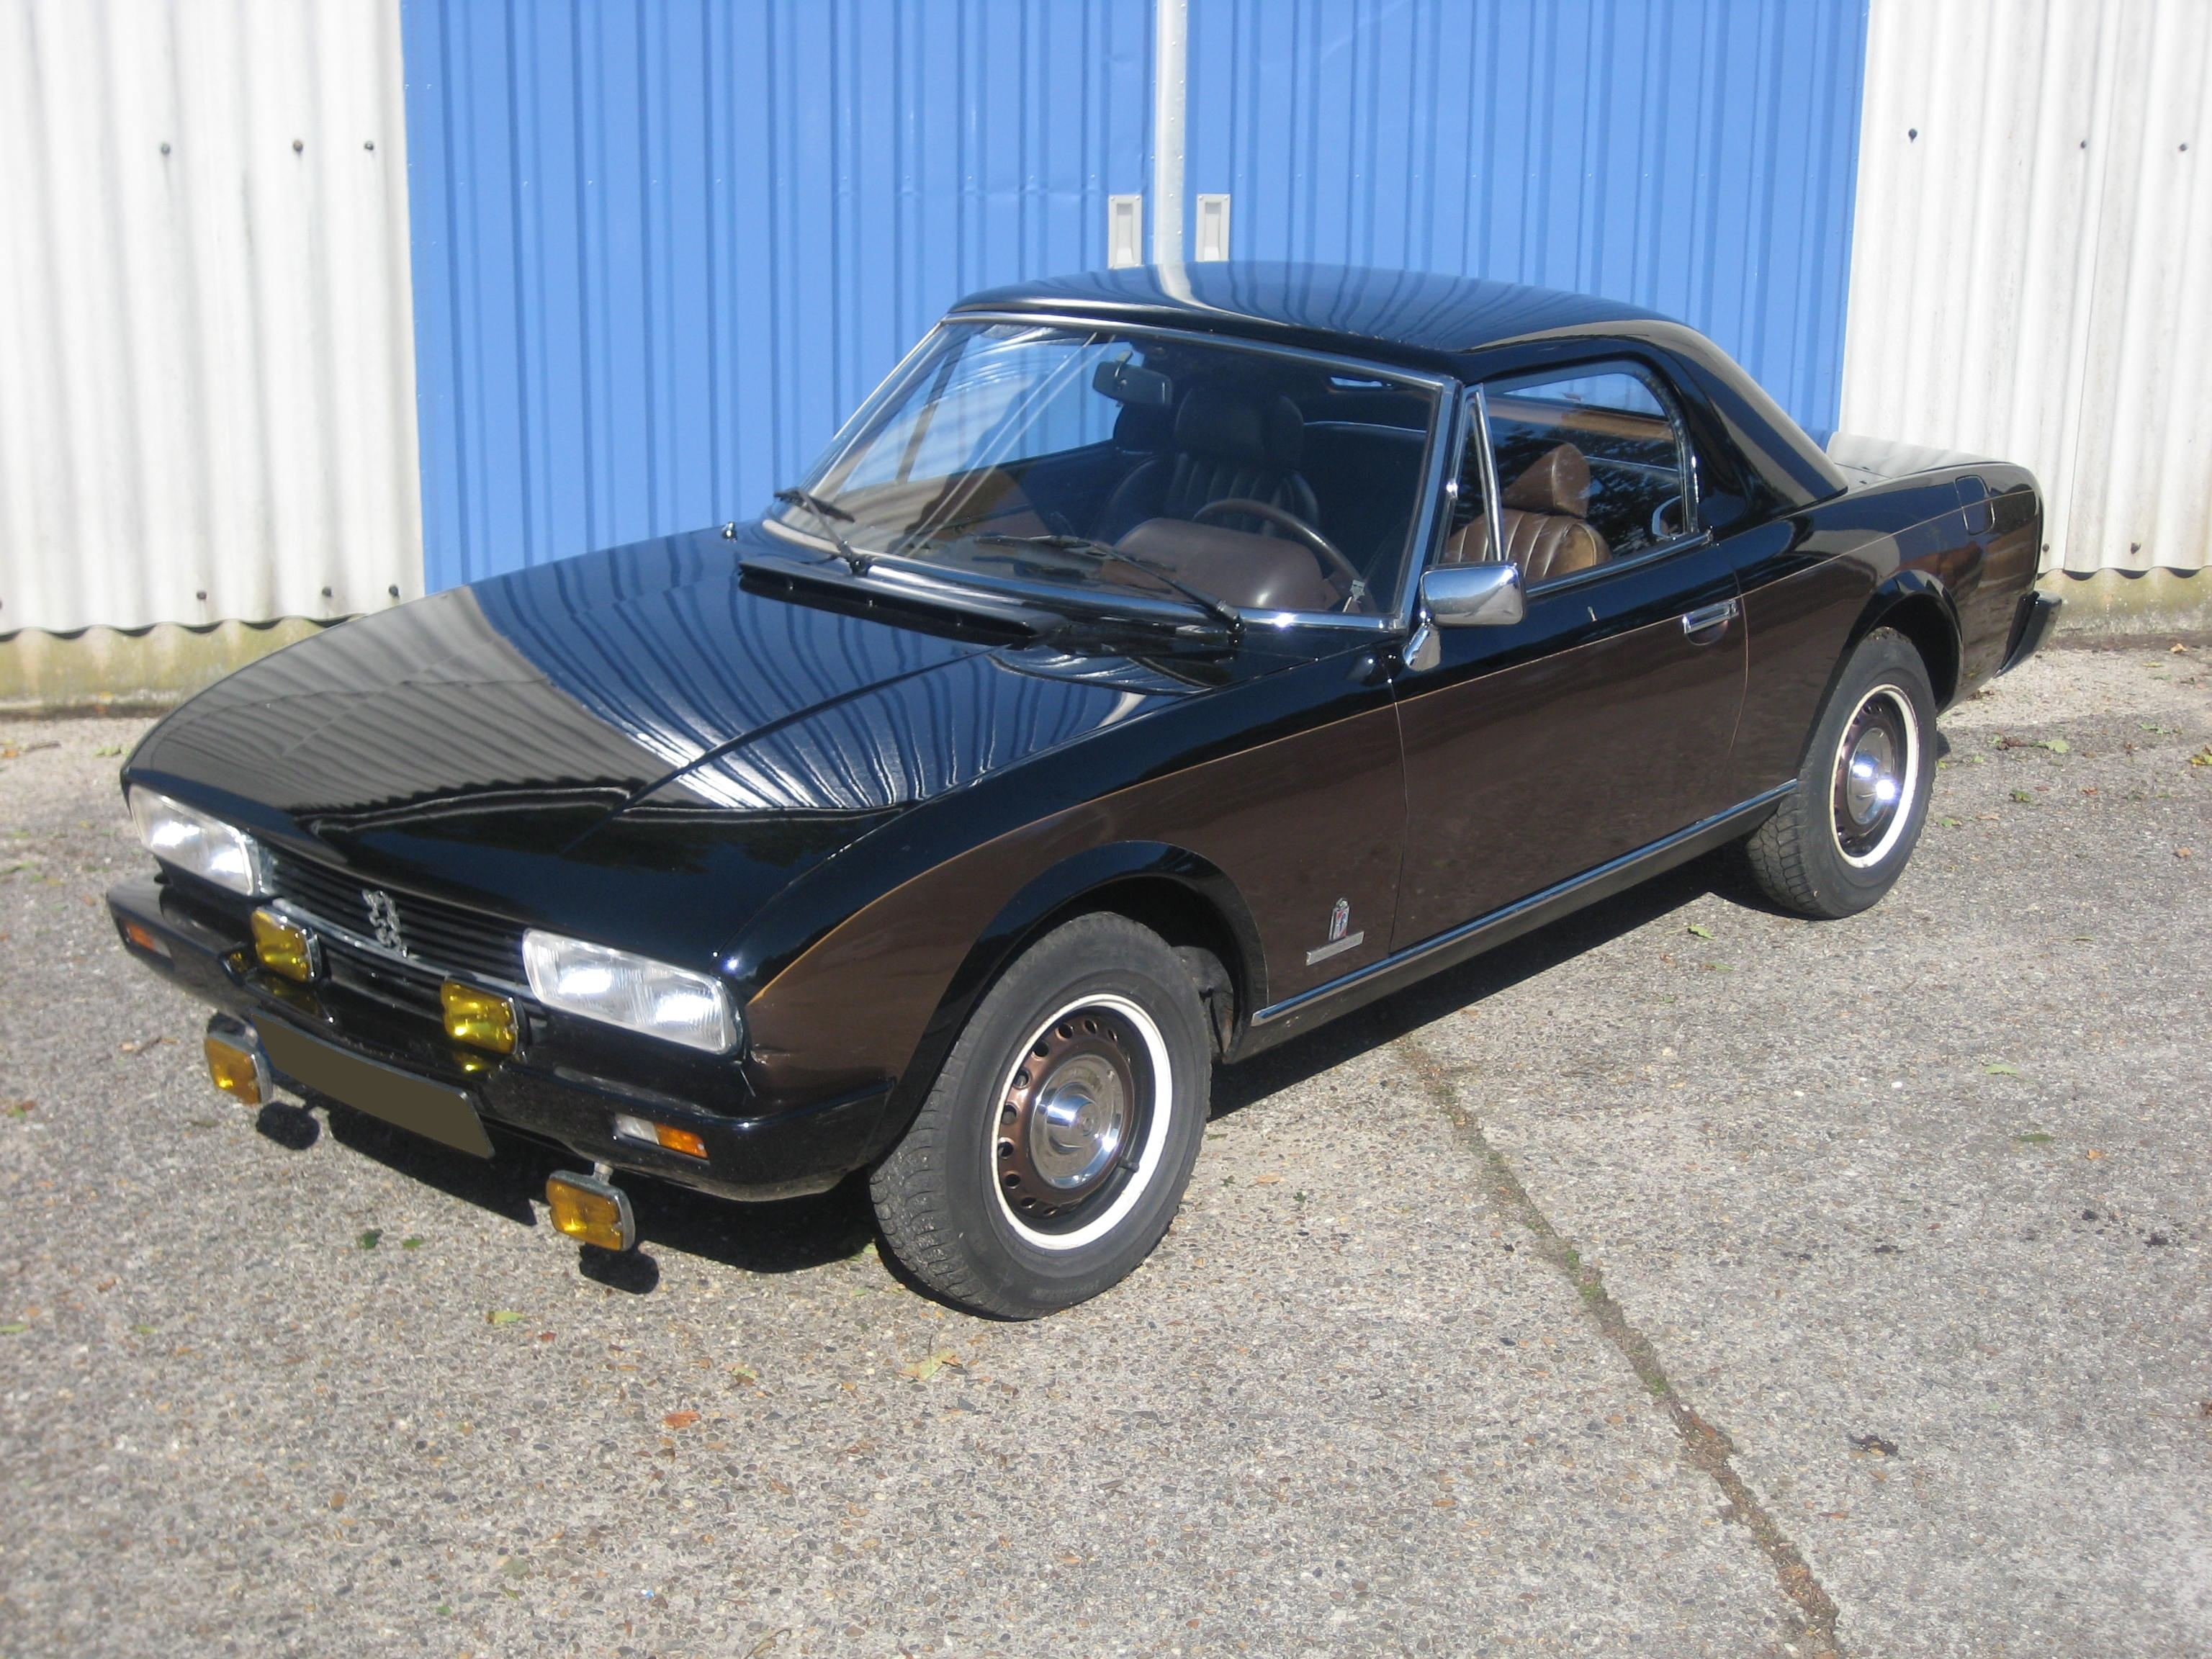 1982 peugeot 504 2l cabriolet chapron hard top classic driver market. Black Bedroom Furniture Sets. Home Design Ideas